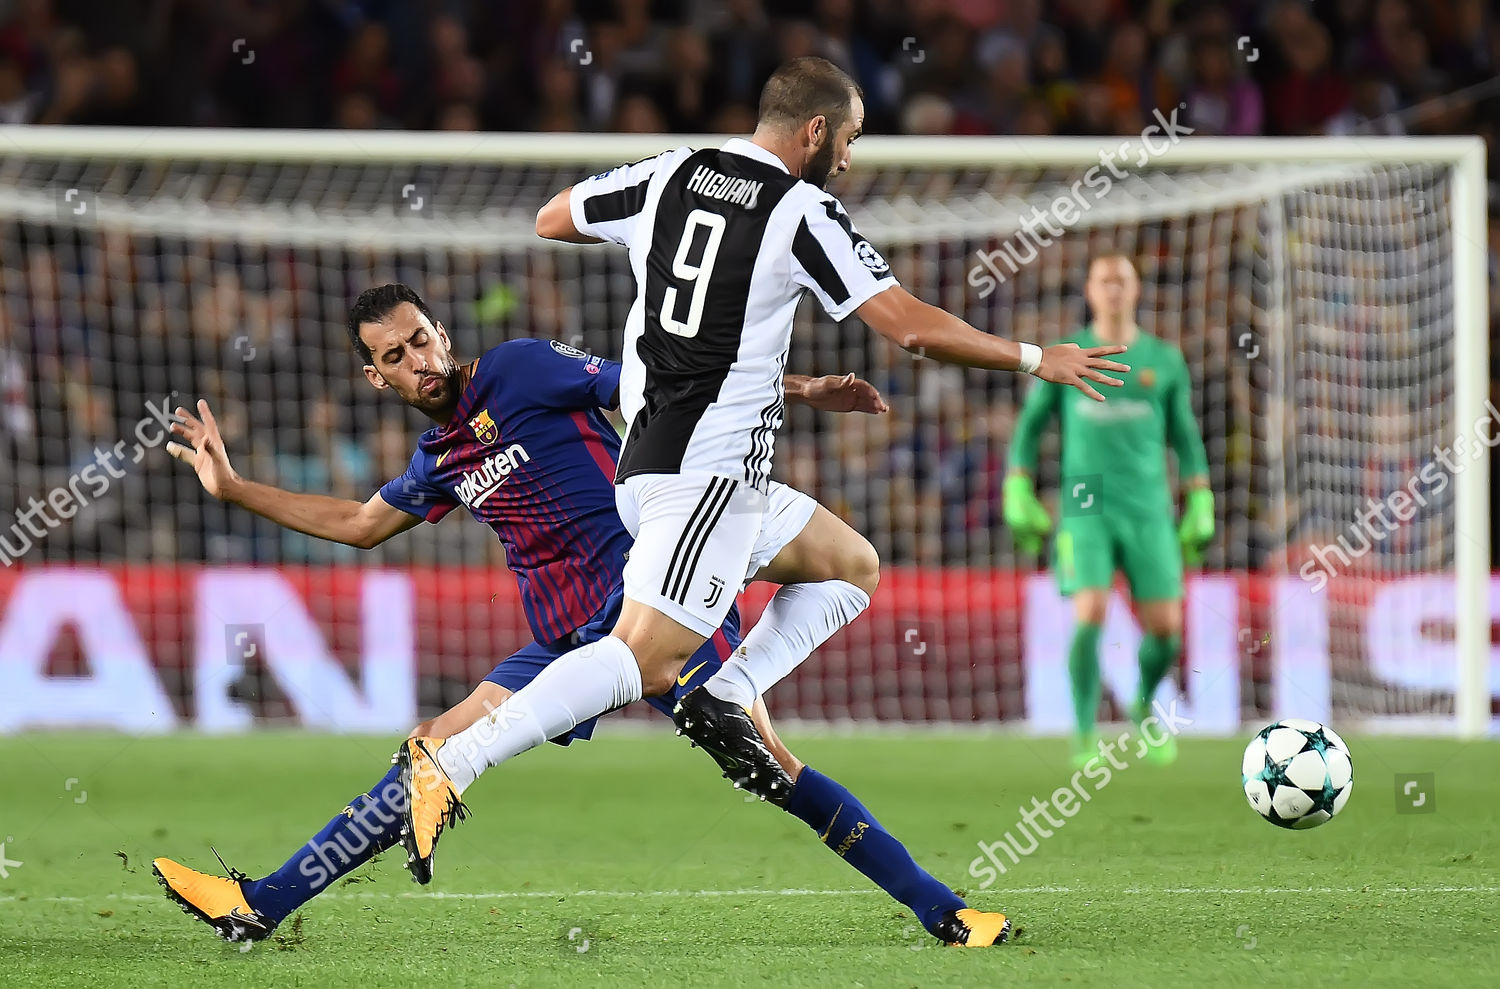 Marcelo Juventus Fc Sergio Busquets Fc Barcelona Editorial Stock Photo Stock Image Shutterstock